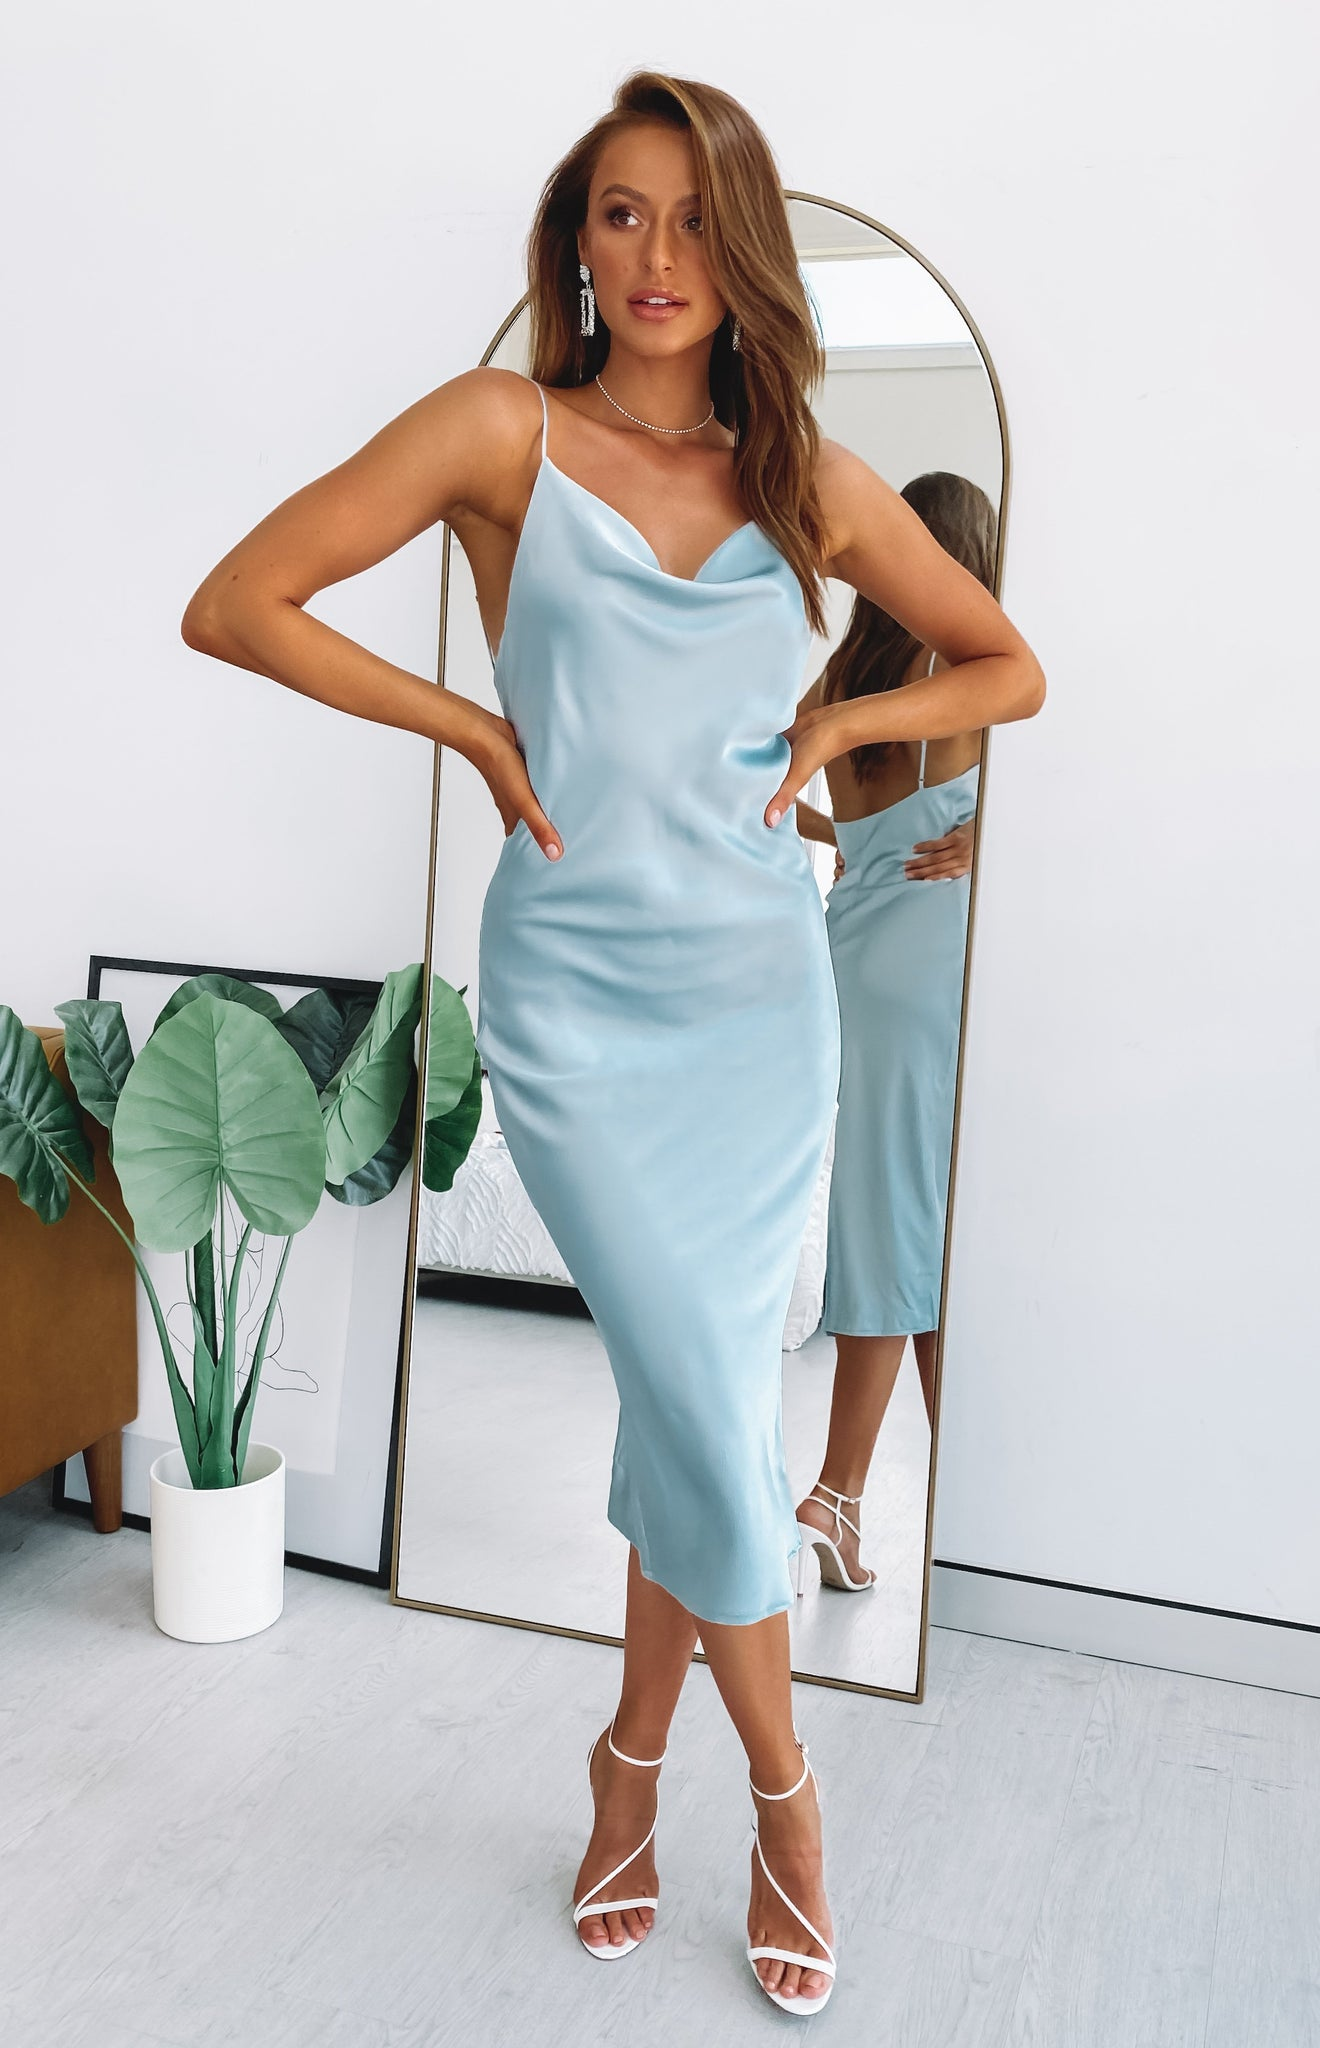 https://files.beginningboutique.com.au/SCHIFFER+SLIP+DRESS+ICY+BLUE+.mp4